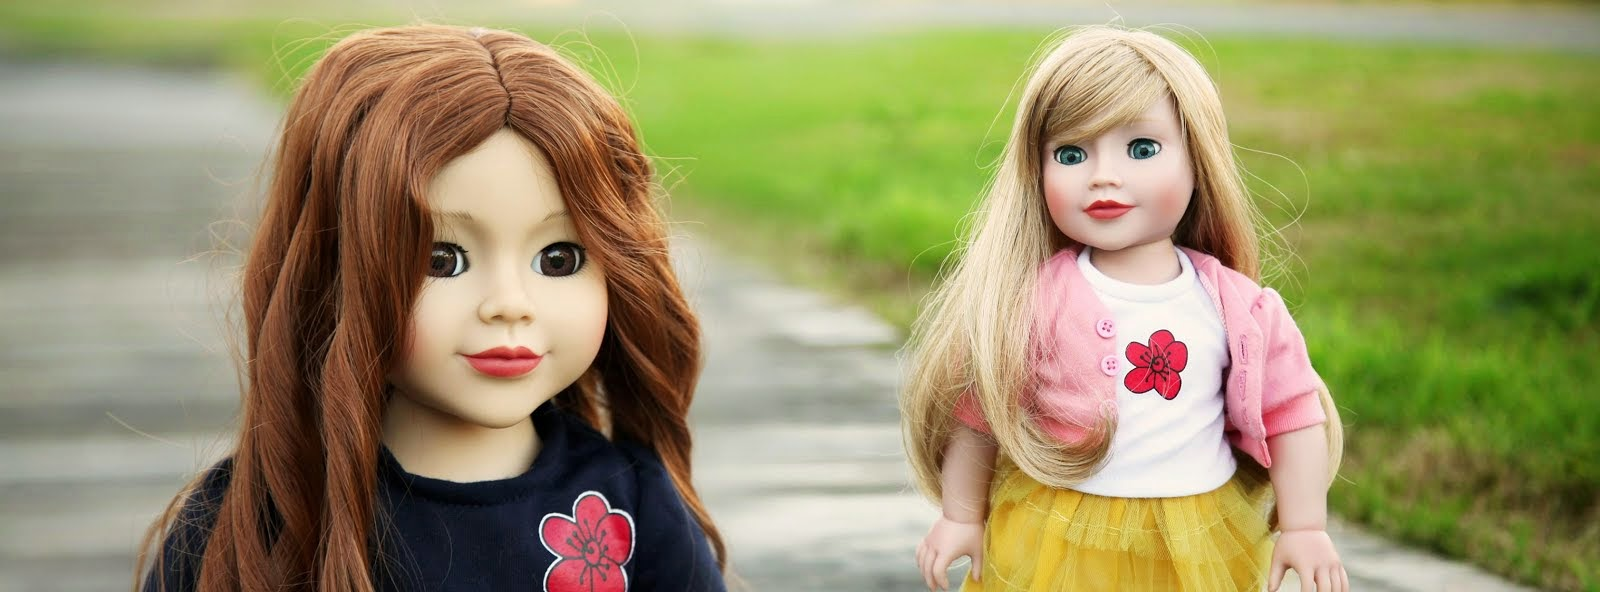 Sisterhood in Town Doll Give Away